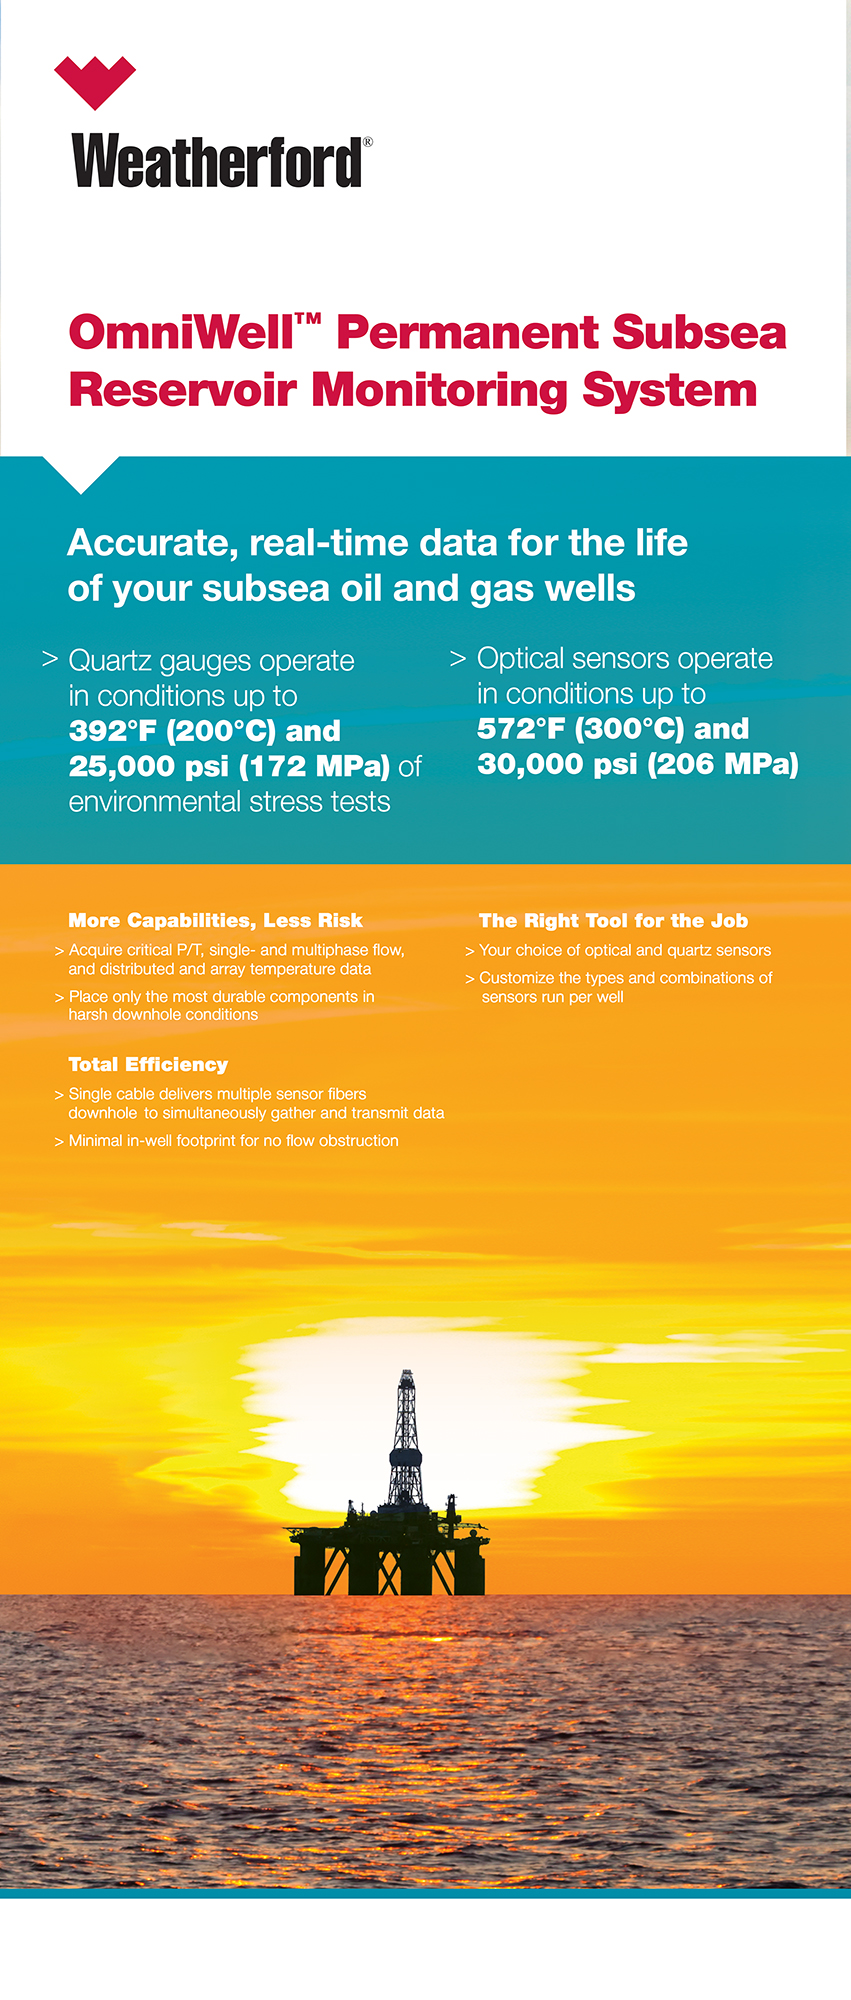 Omniwell Subsea Water Cut 2014 Bannerstand.jpg